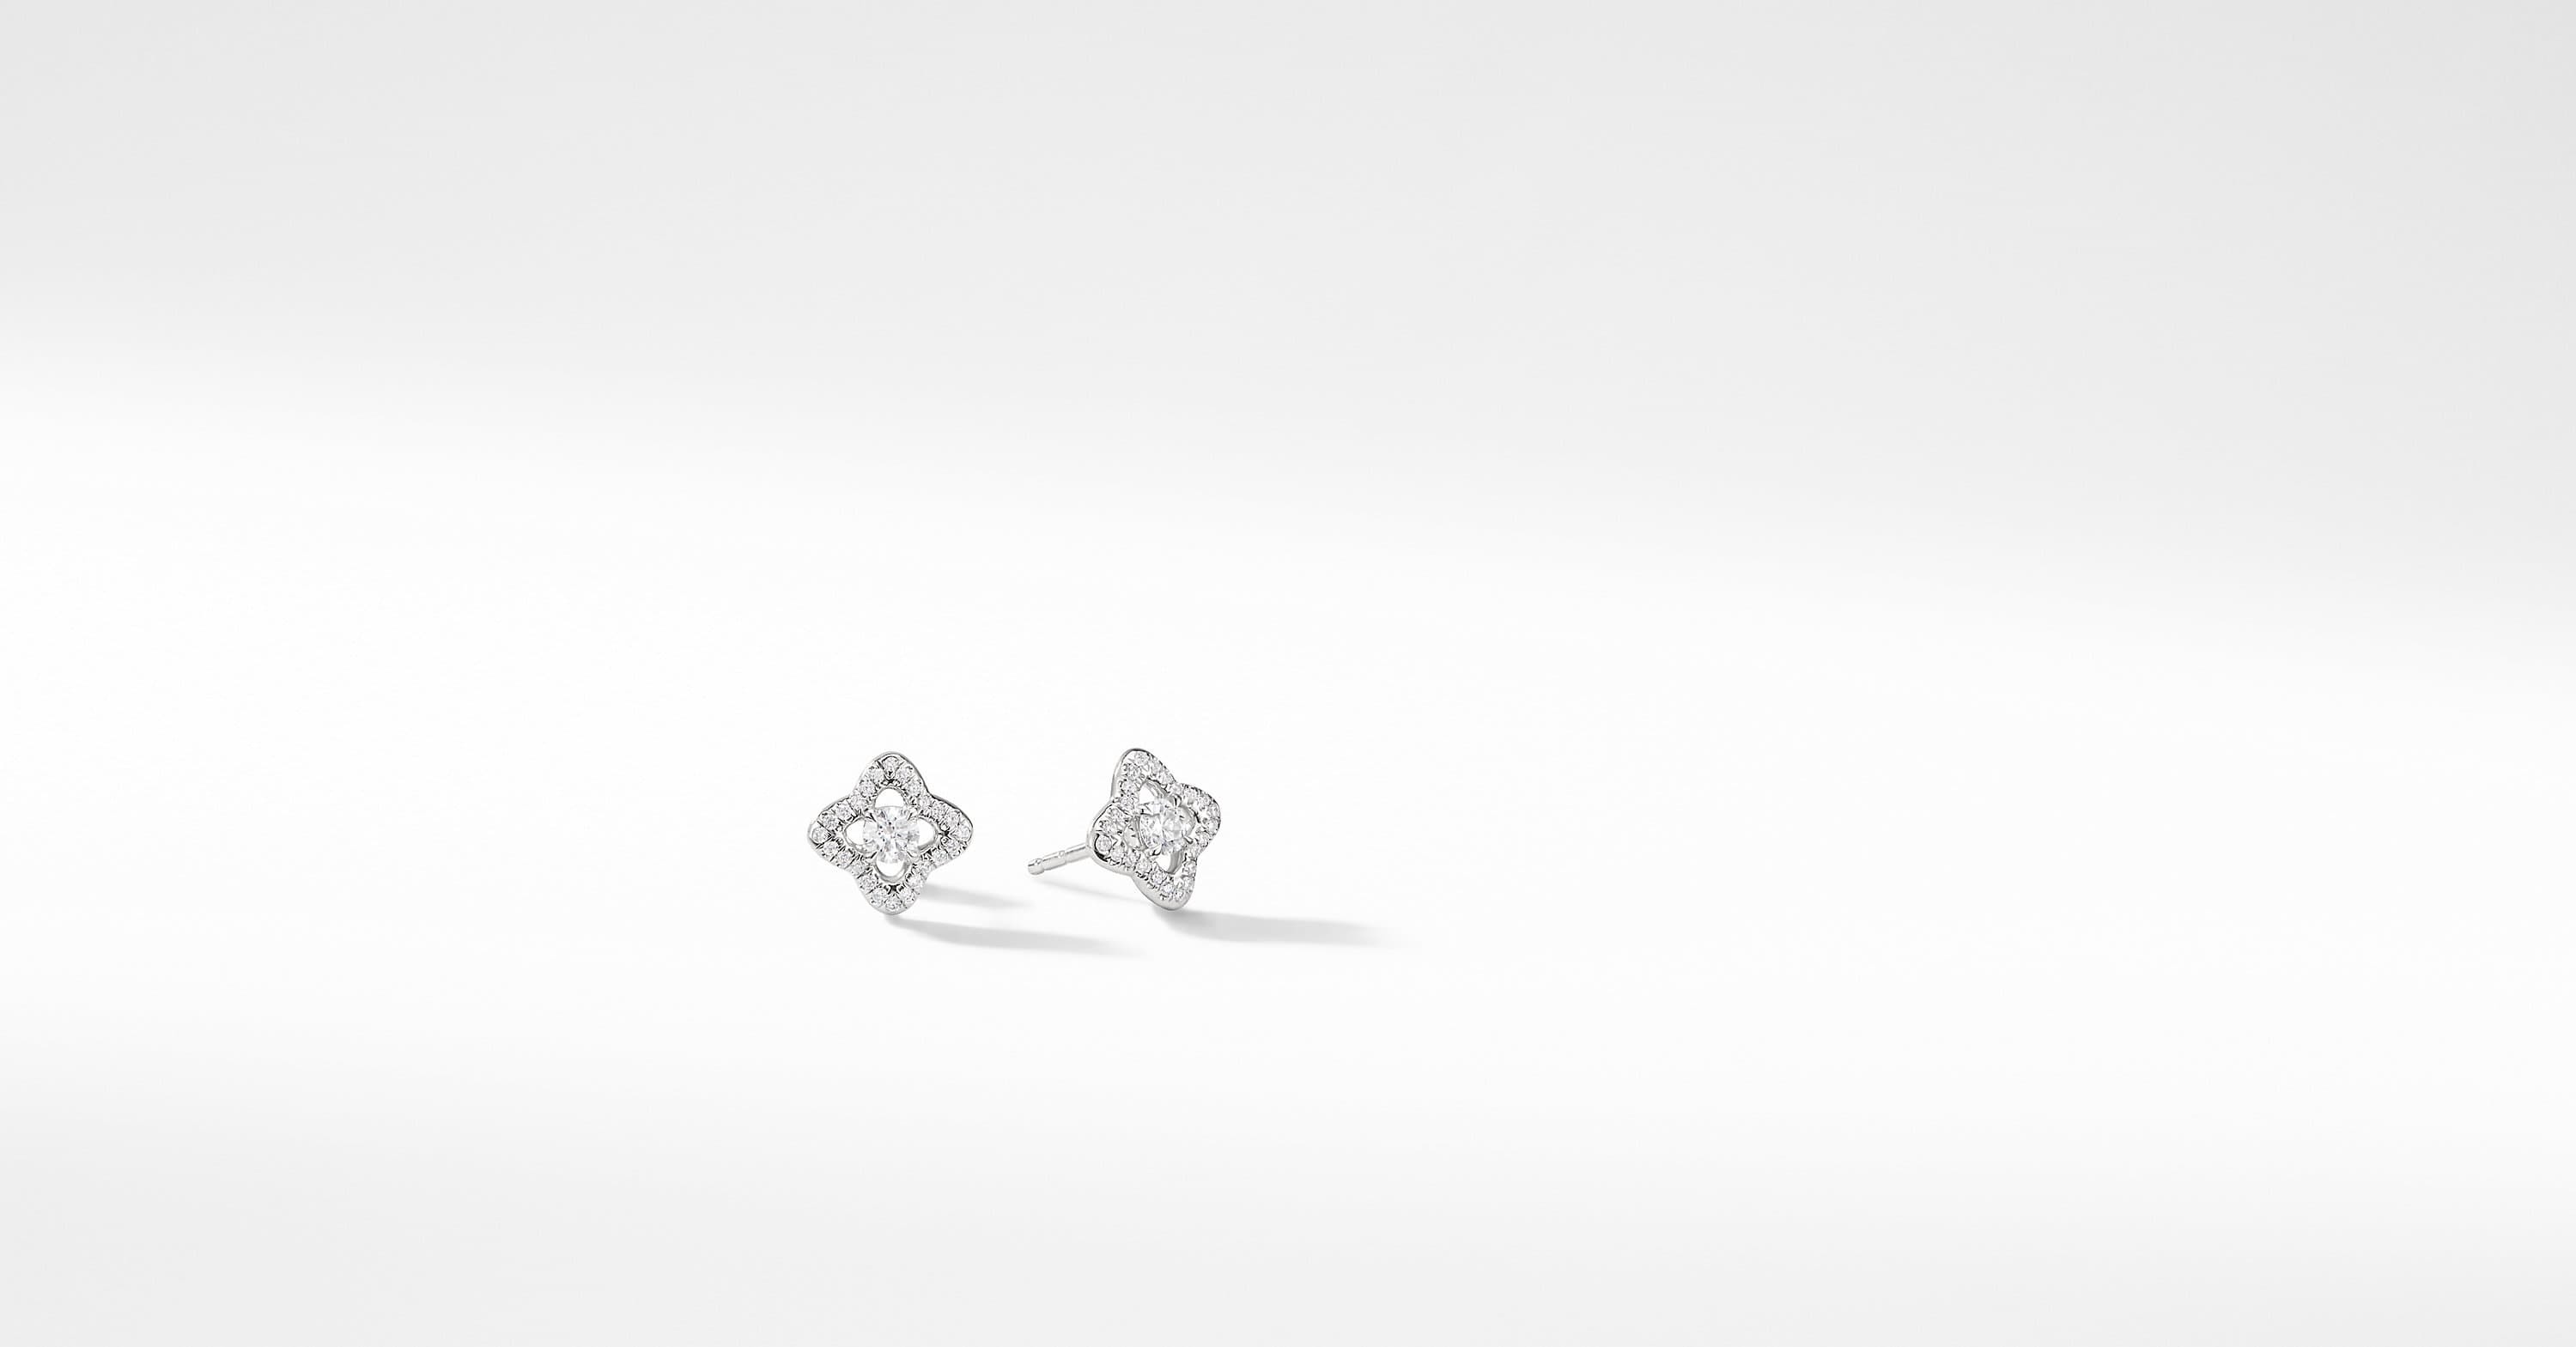 Venetian Quatrefoil Earrings with Diamonds in 18K White Gold